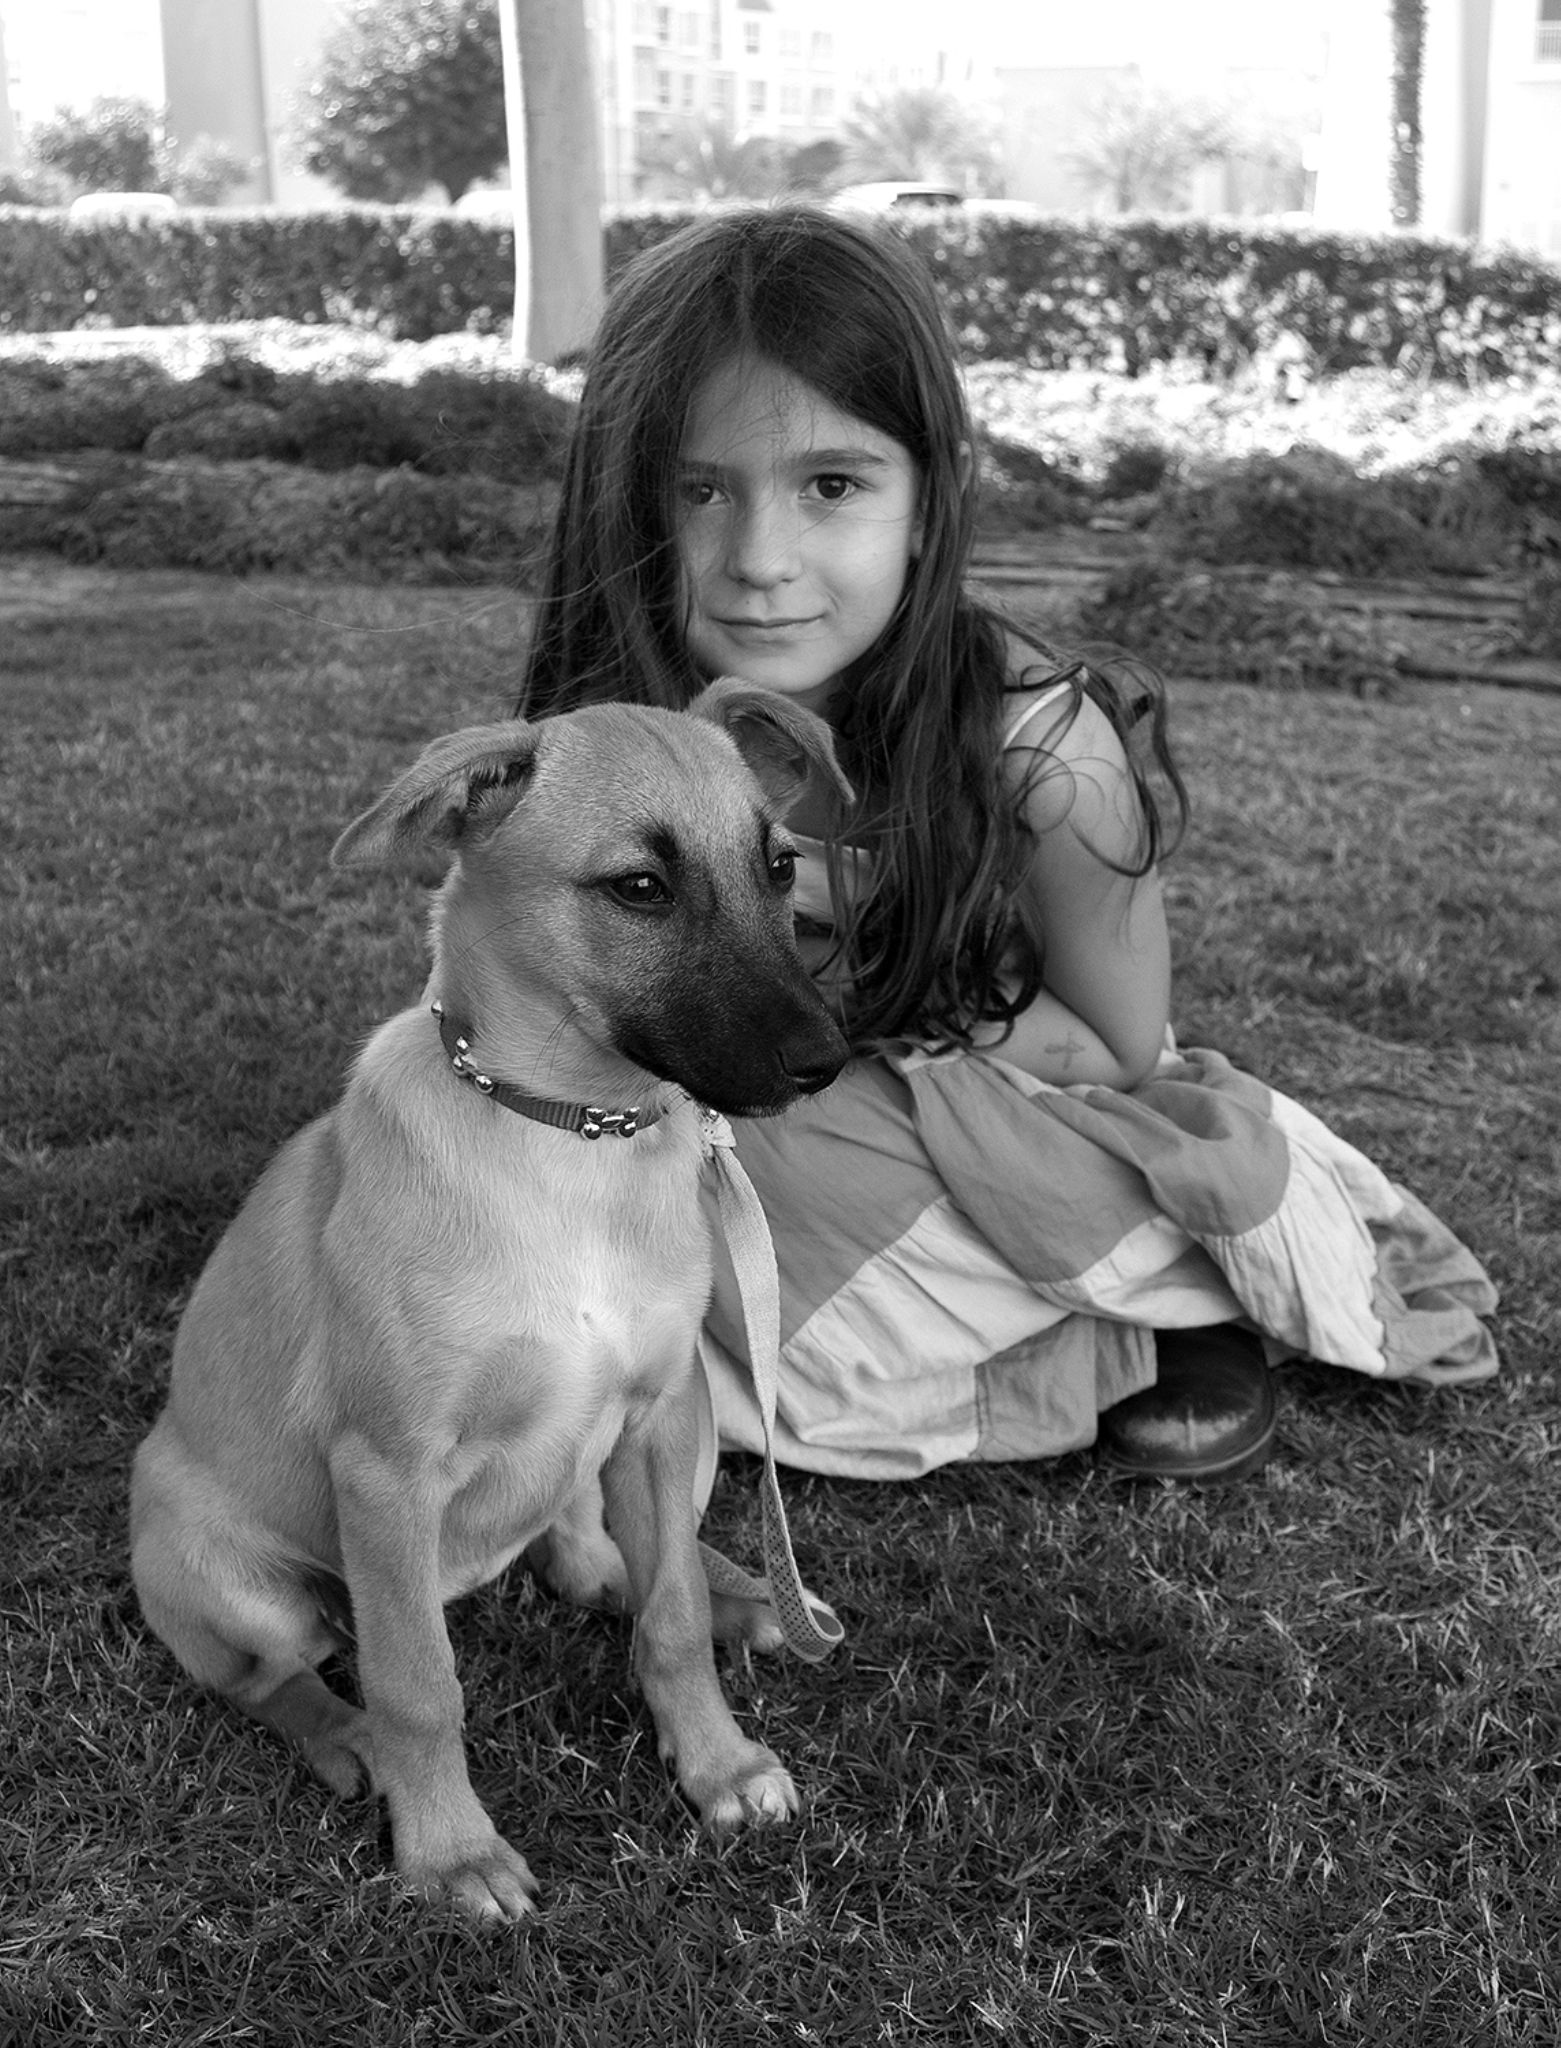 Anna and Bella by Mano Yertanian